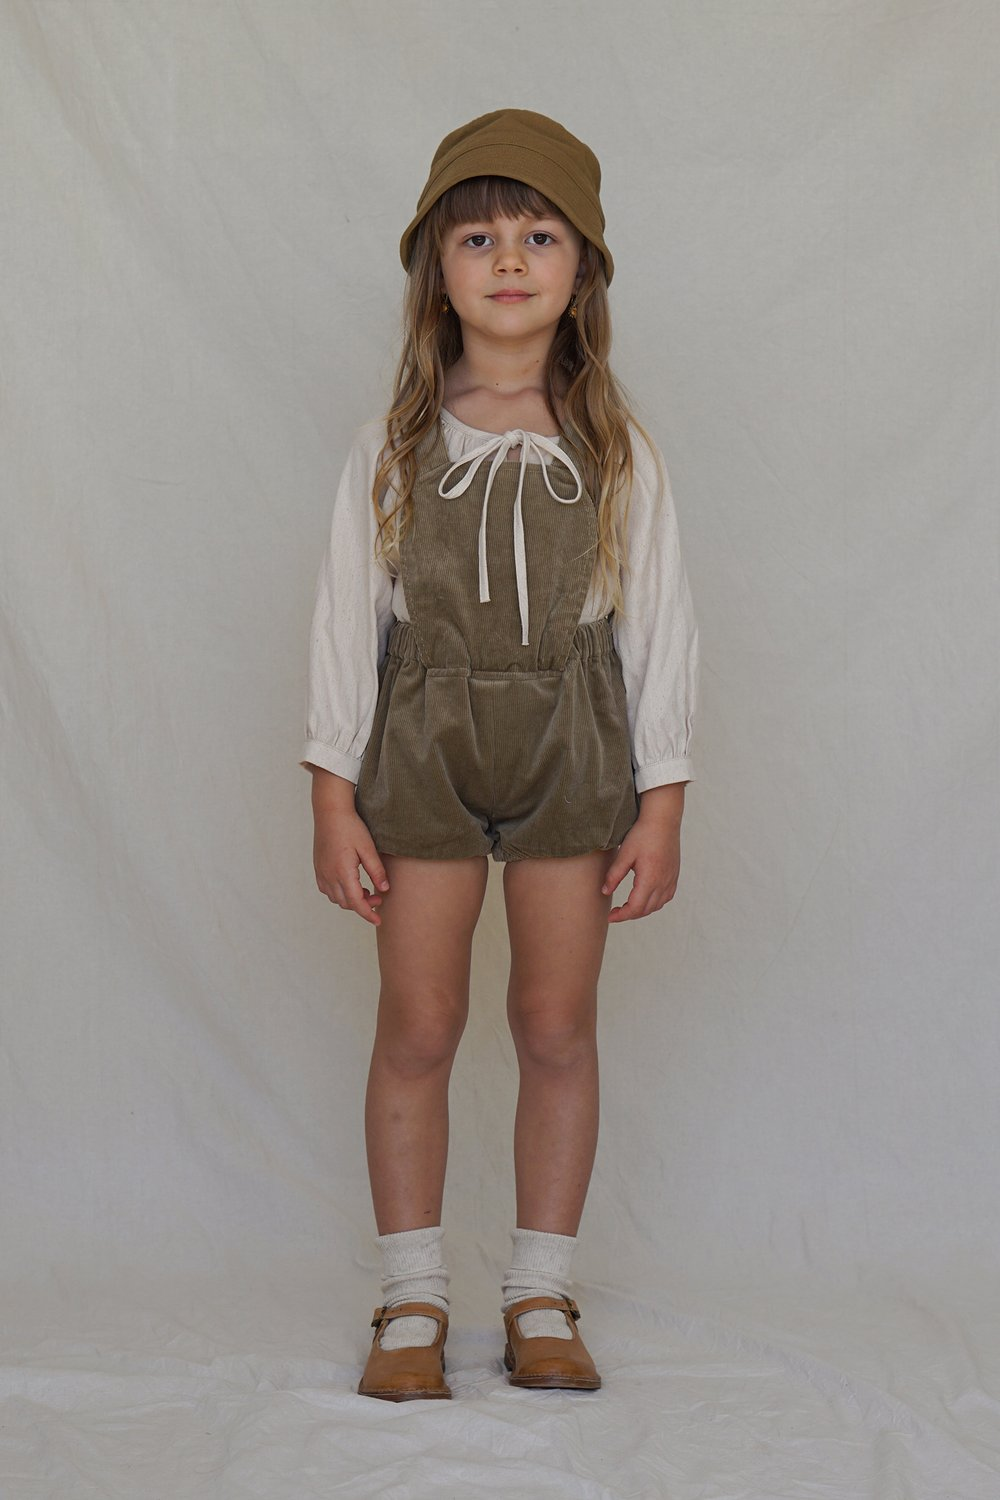 Children_of_the_Wild-Australia House of Paloma Anais Playsuit ~ Caper  Caper Cord, beautifully lined in a playful striped cotton.